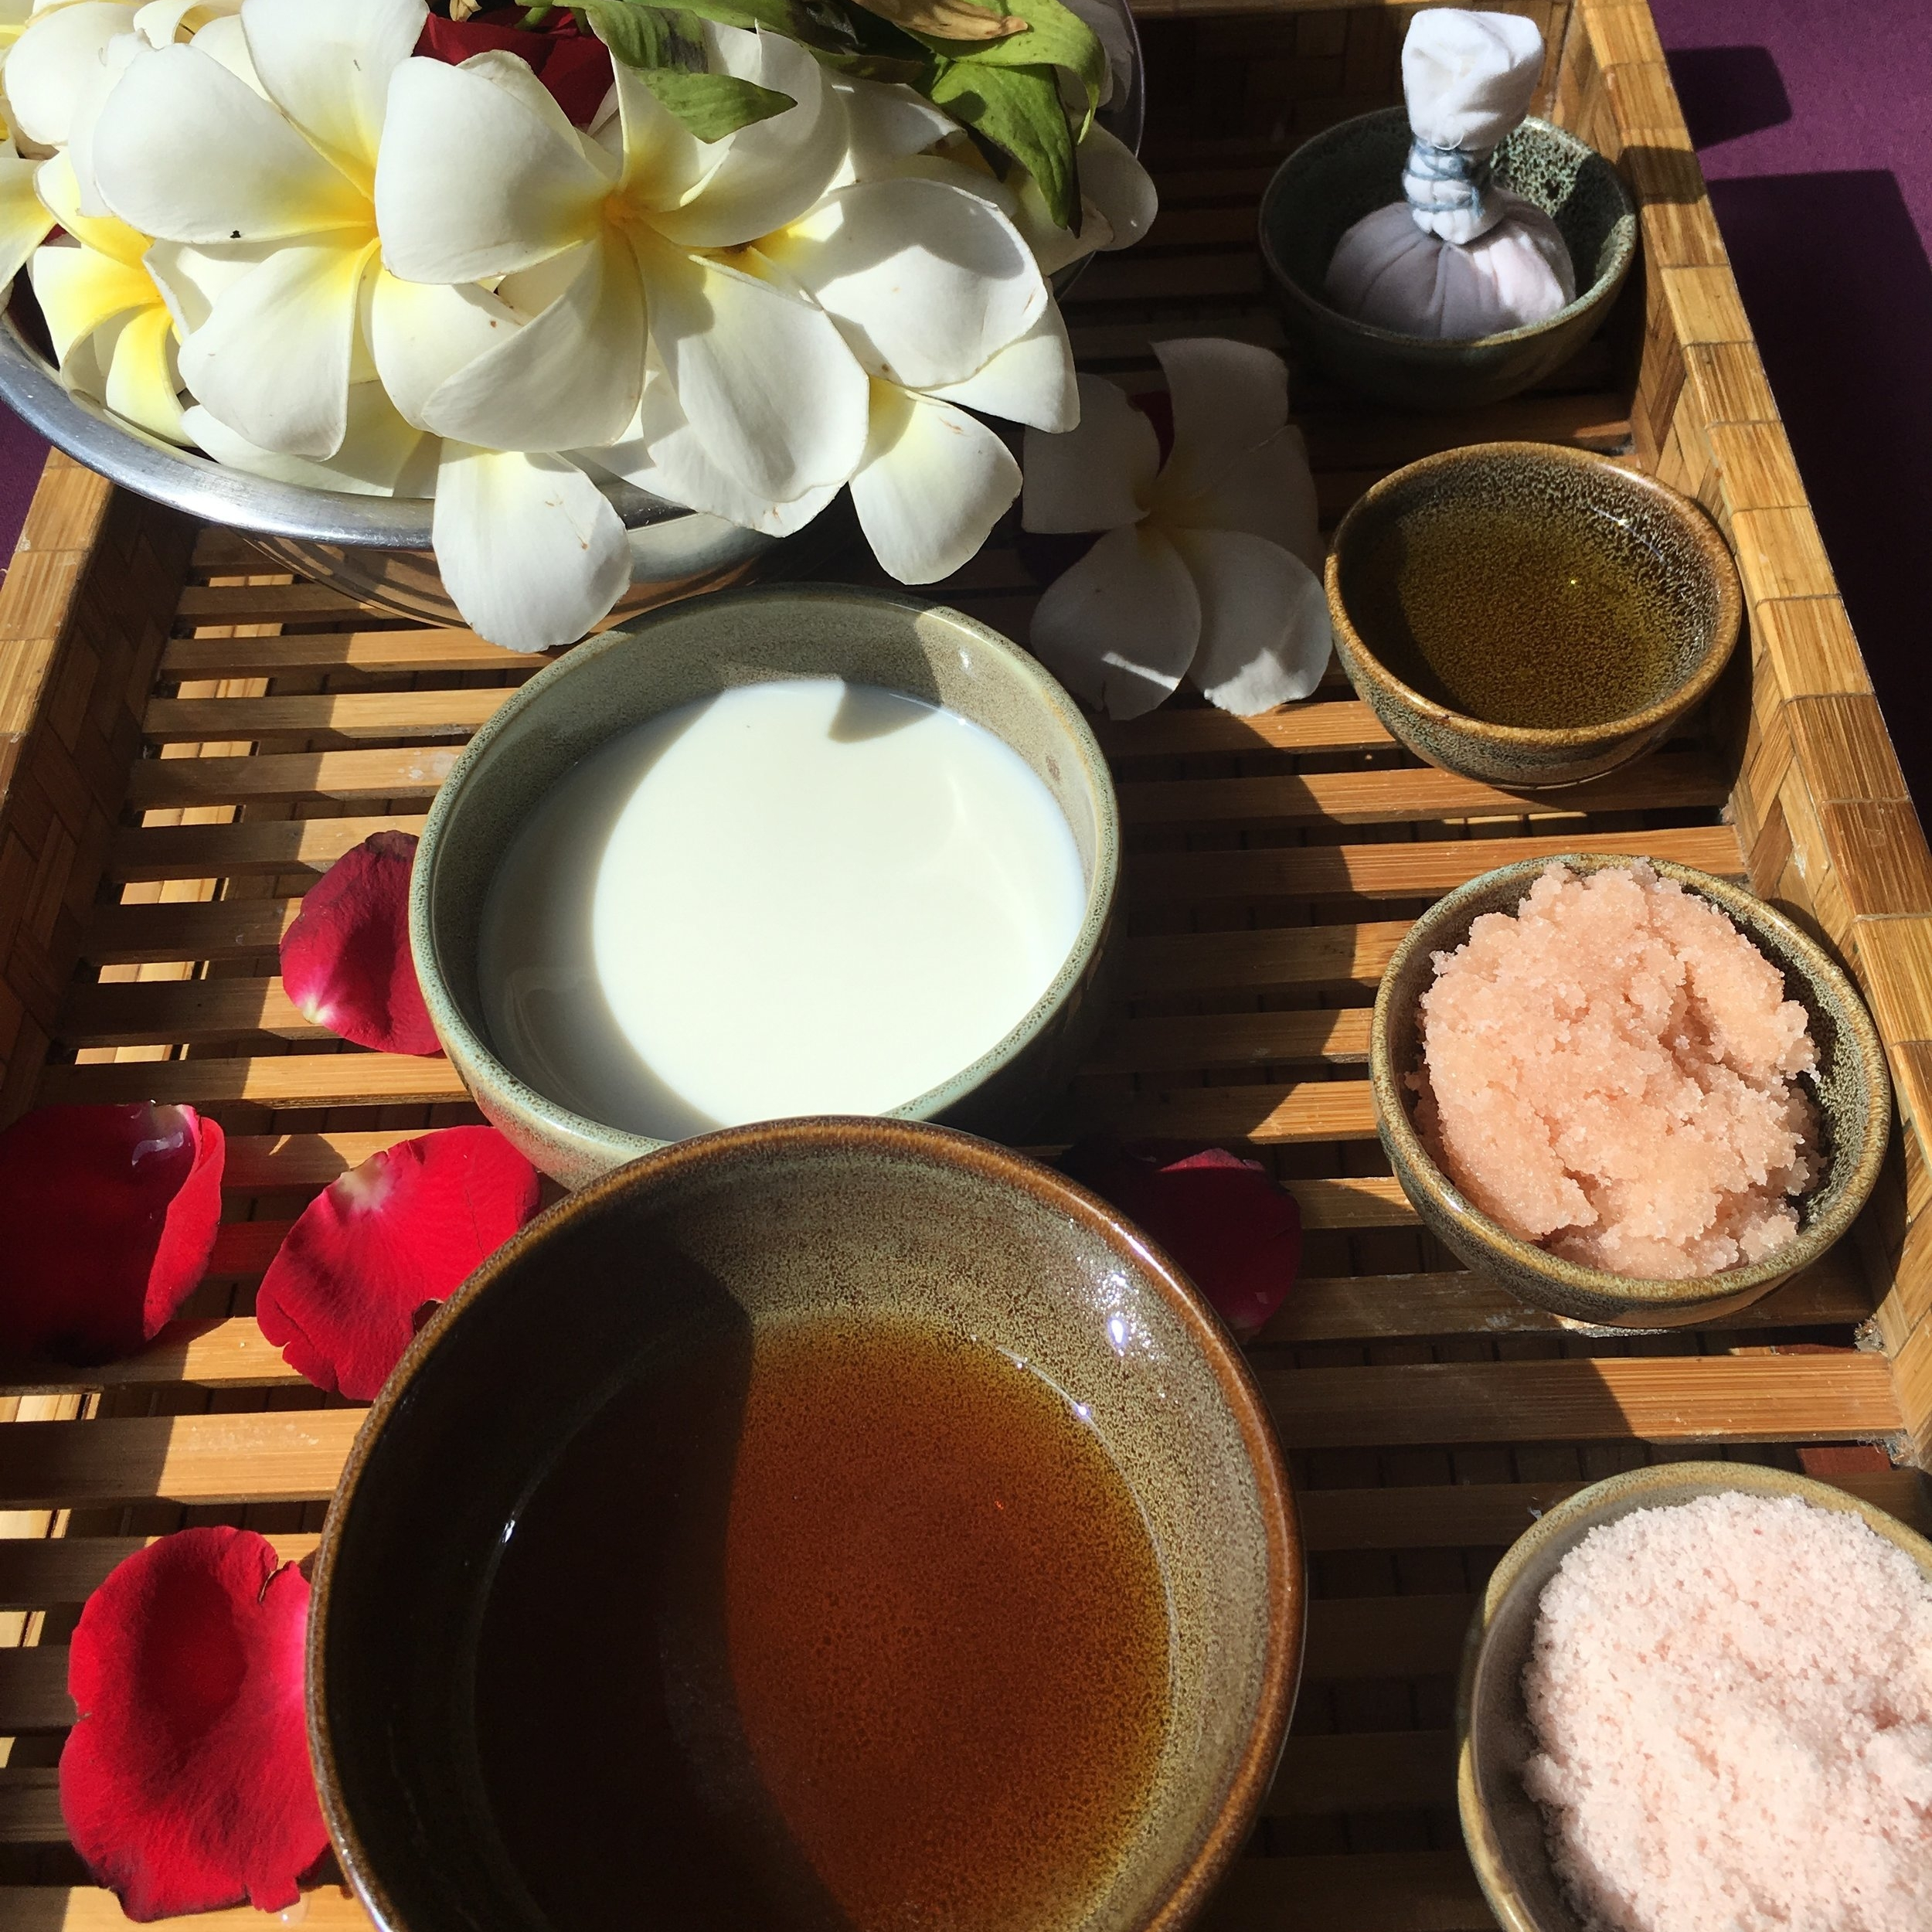 The ingredients for the Himalayan salt, honey and milk scrub treatment